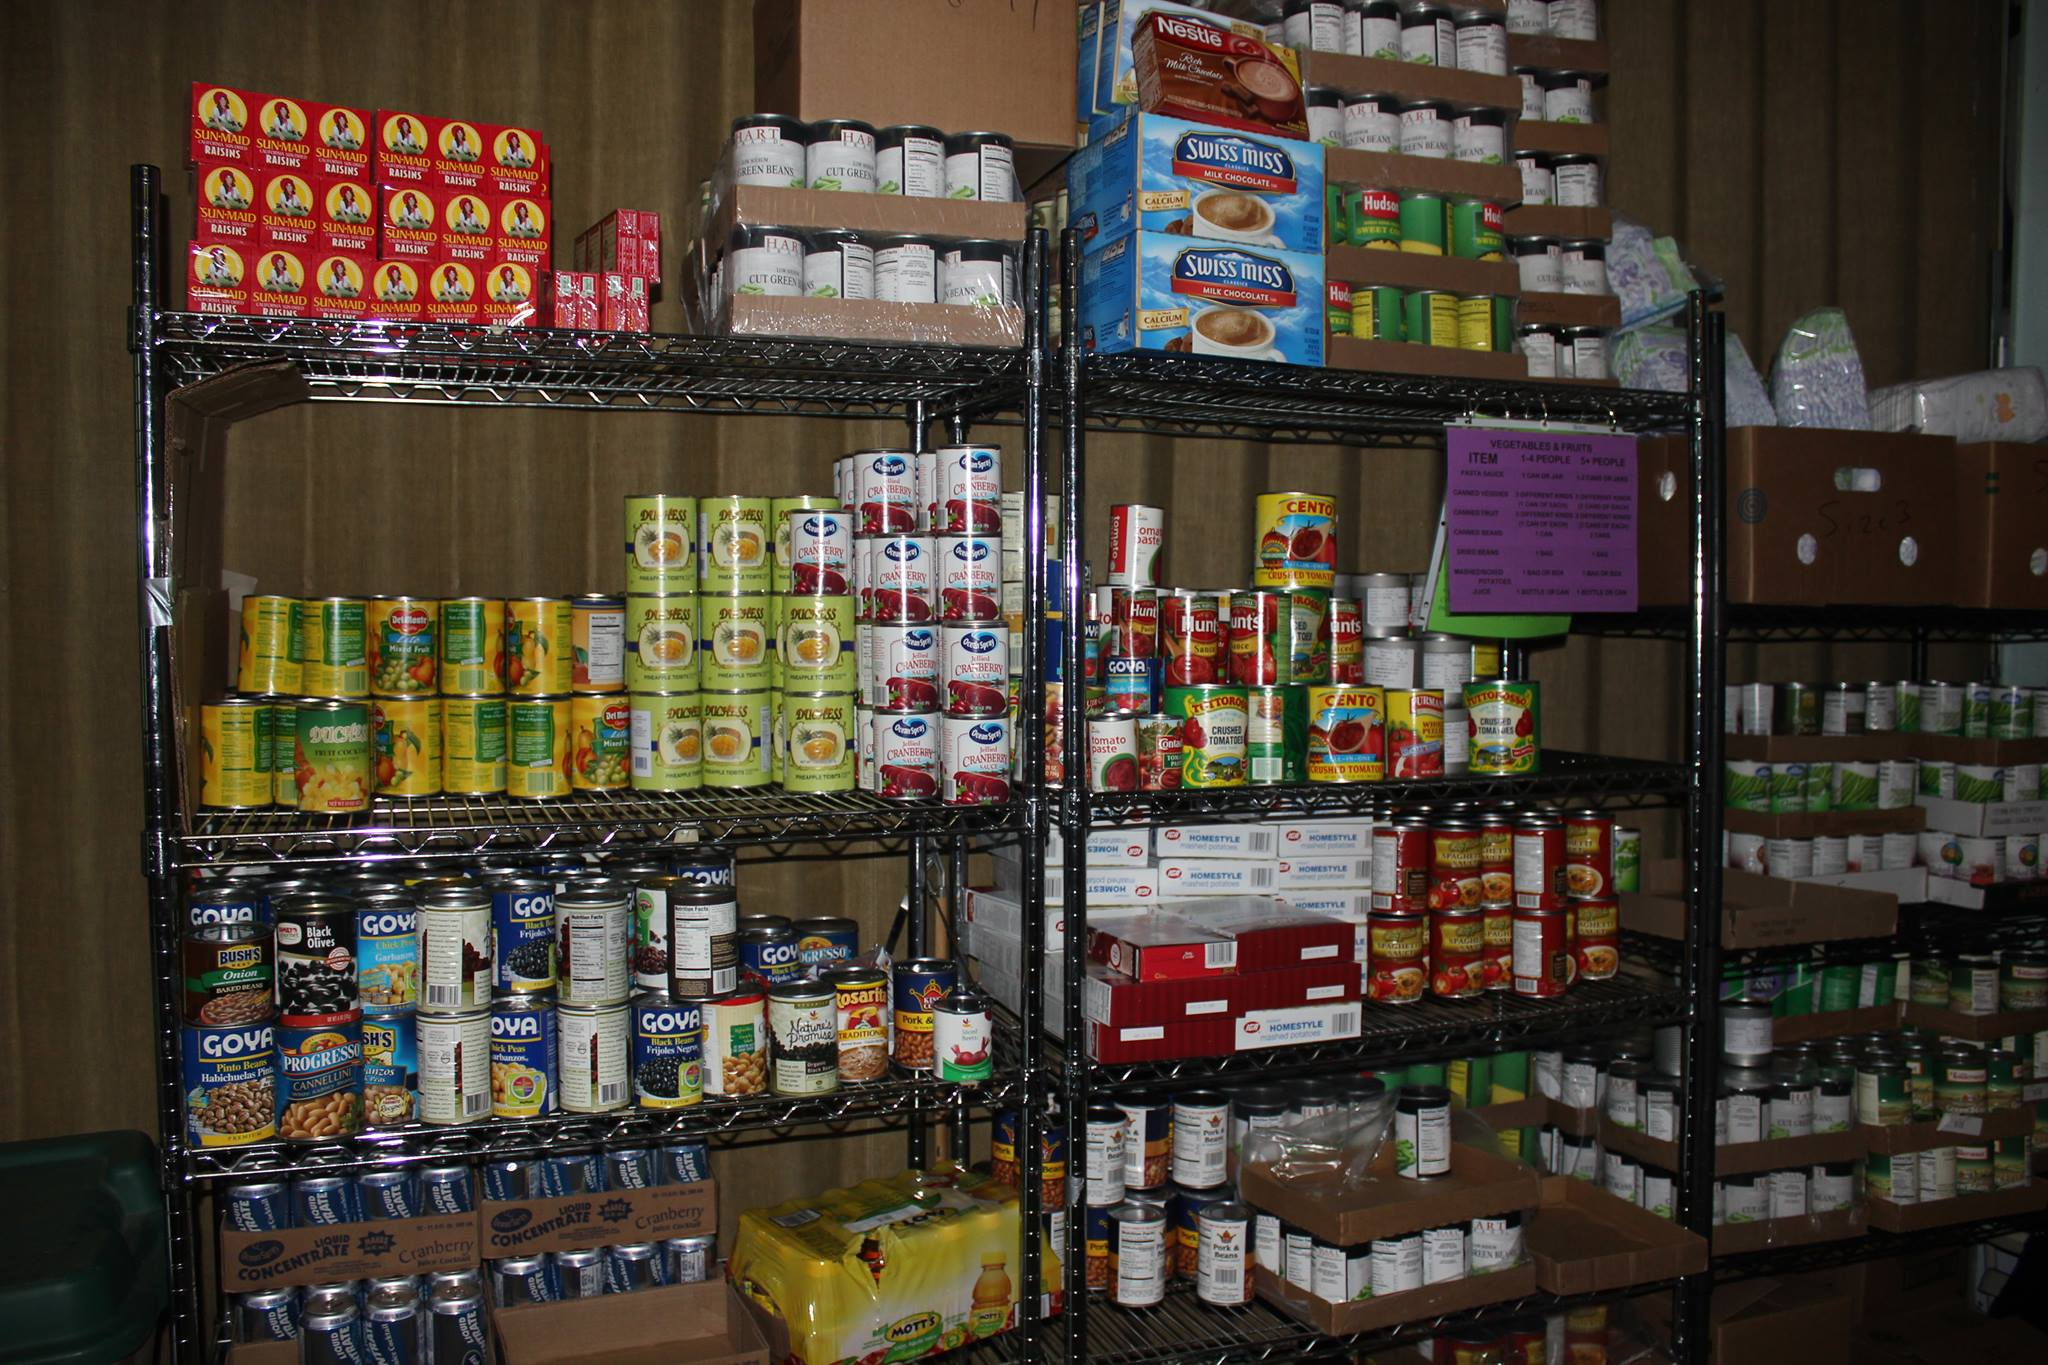 Mount Ida Food Pantry